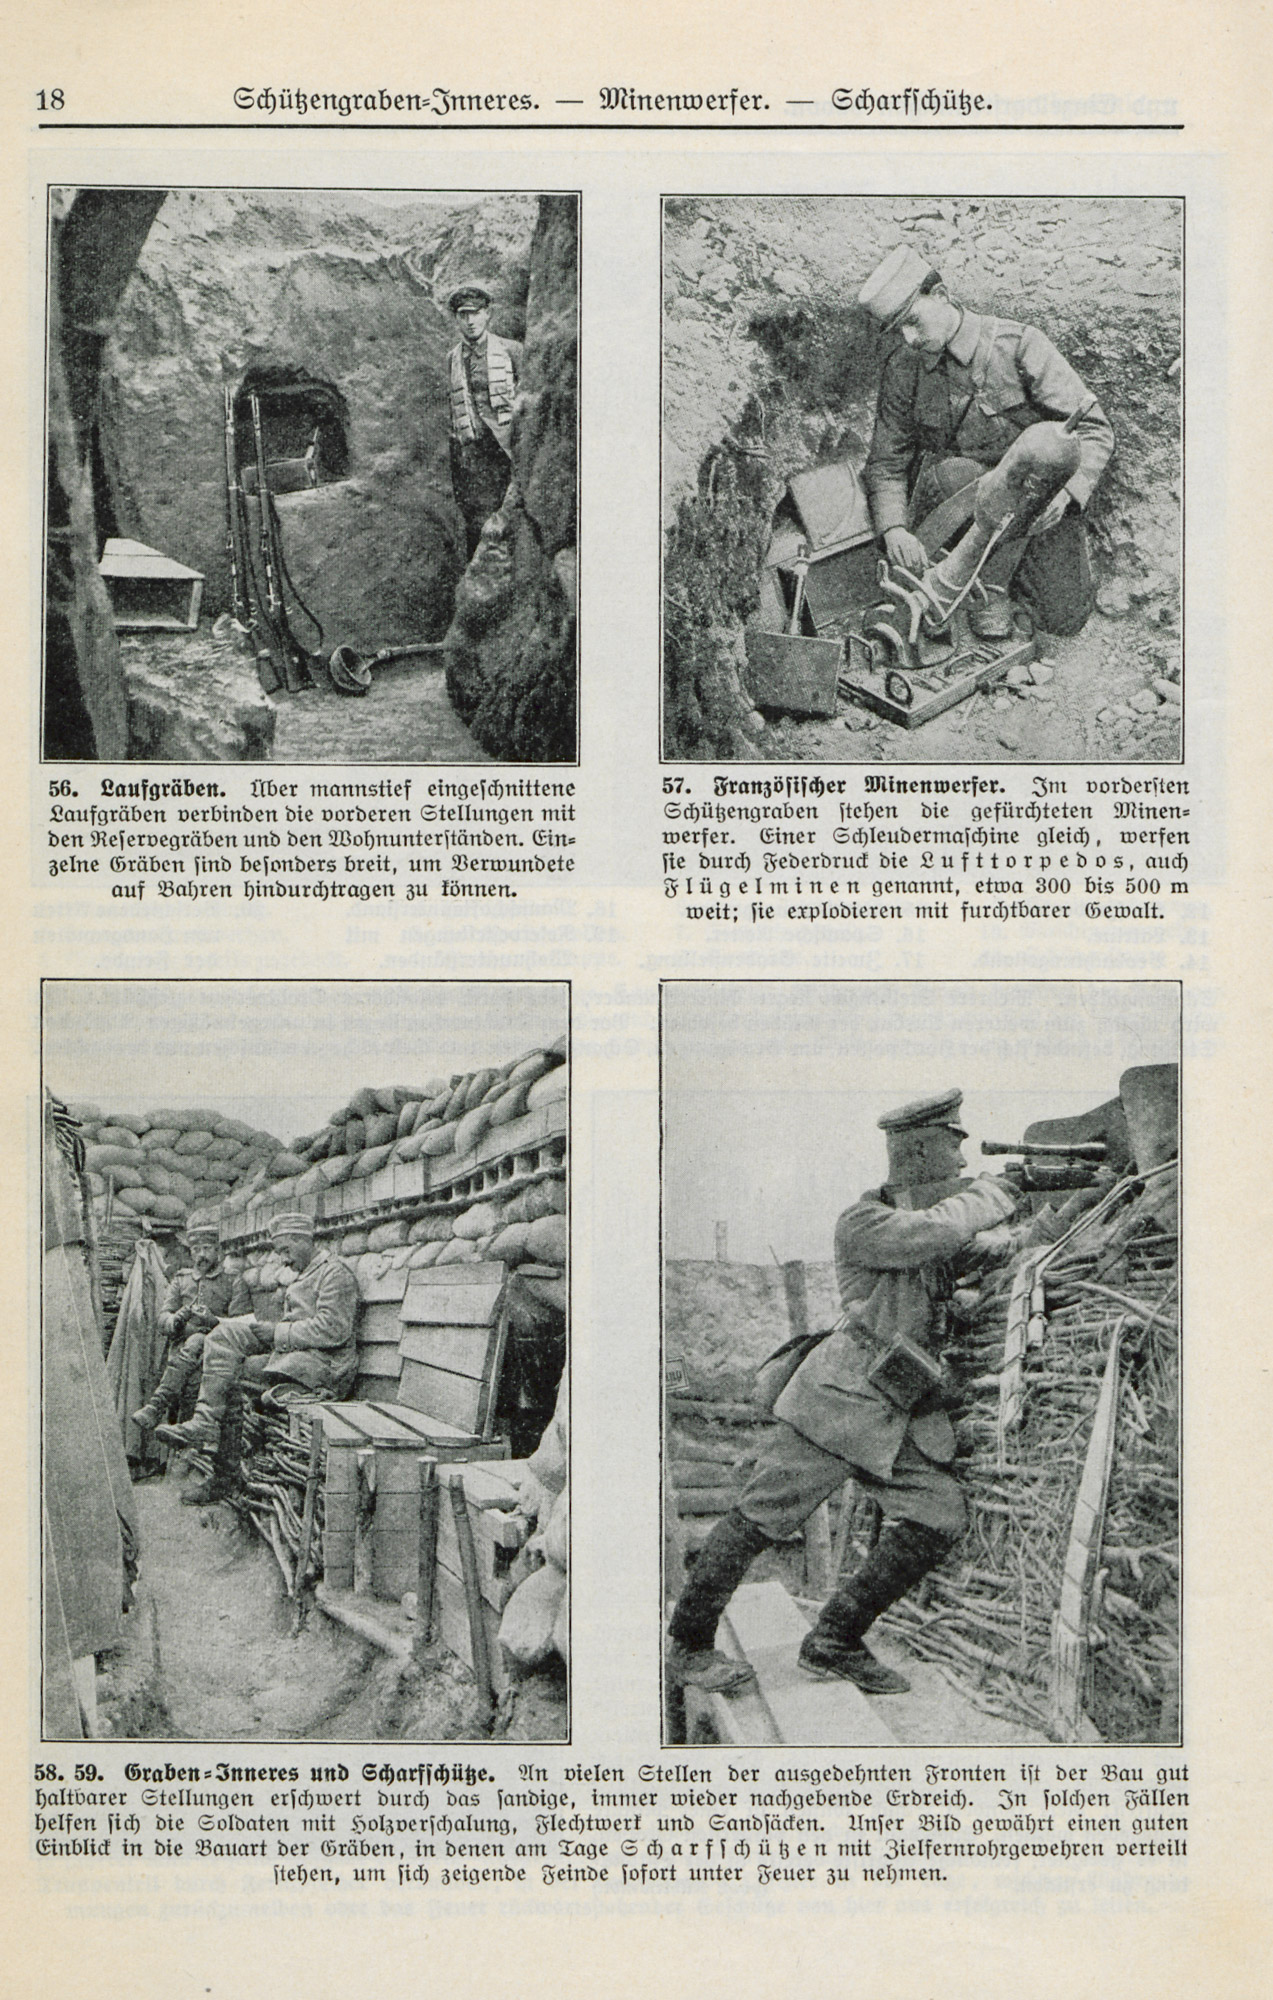 German photographs from a booklet of '100 typical pictures and explanatory drawings from the wartime life'. The images, aimed at schoolchildren and teachers, present an idealised view of the Front. 1916.